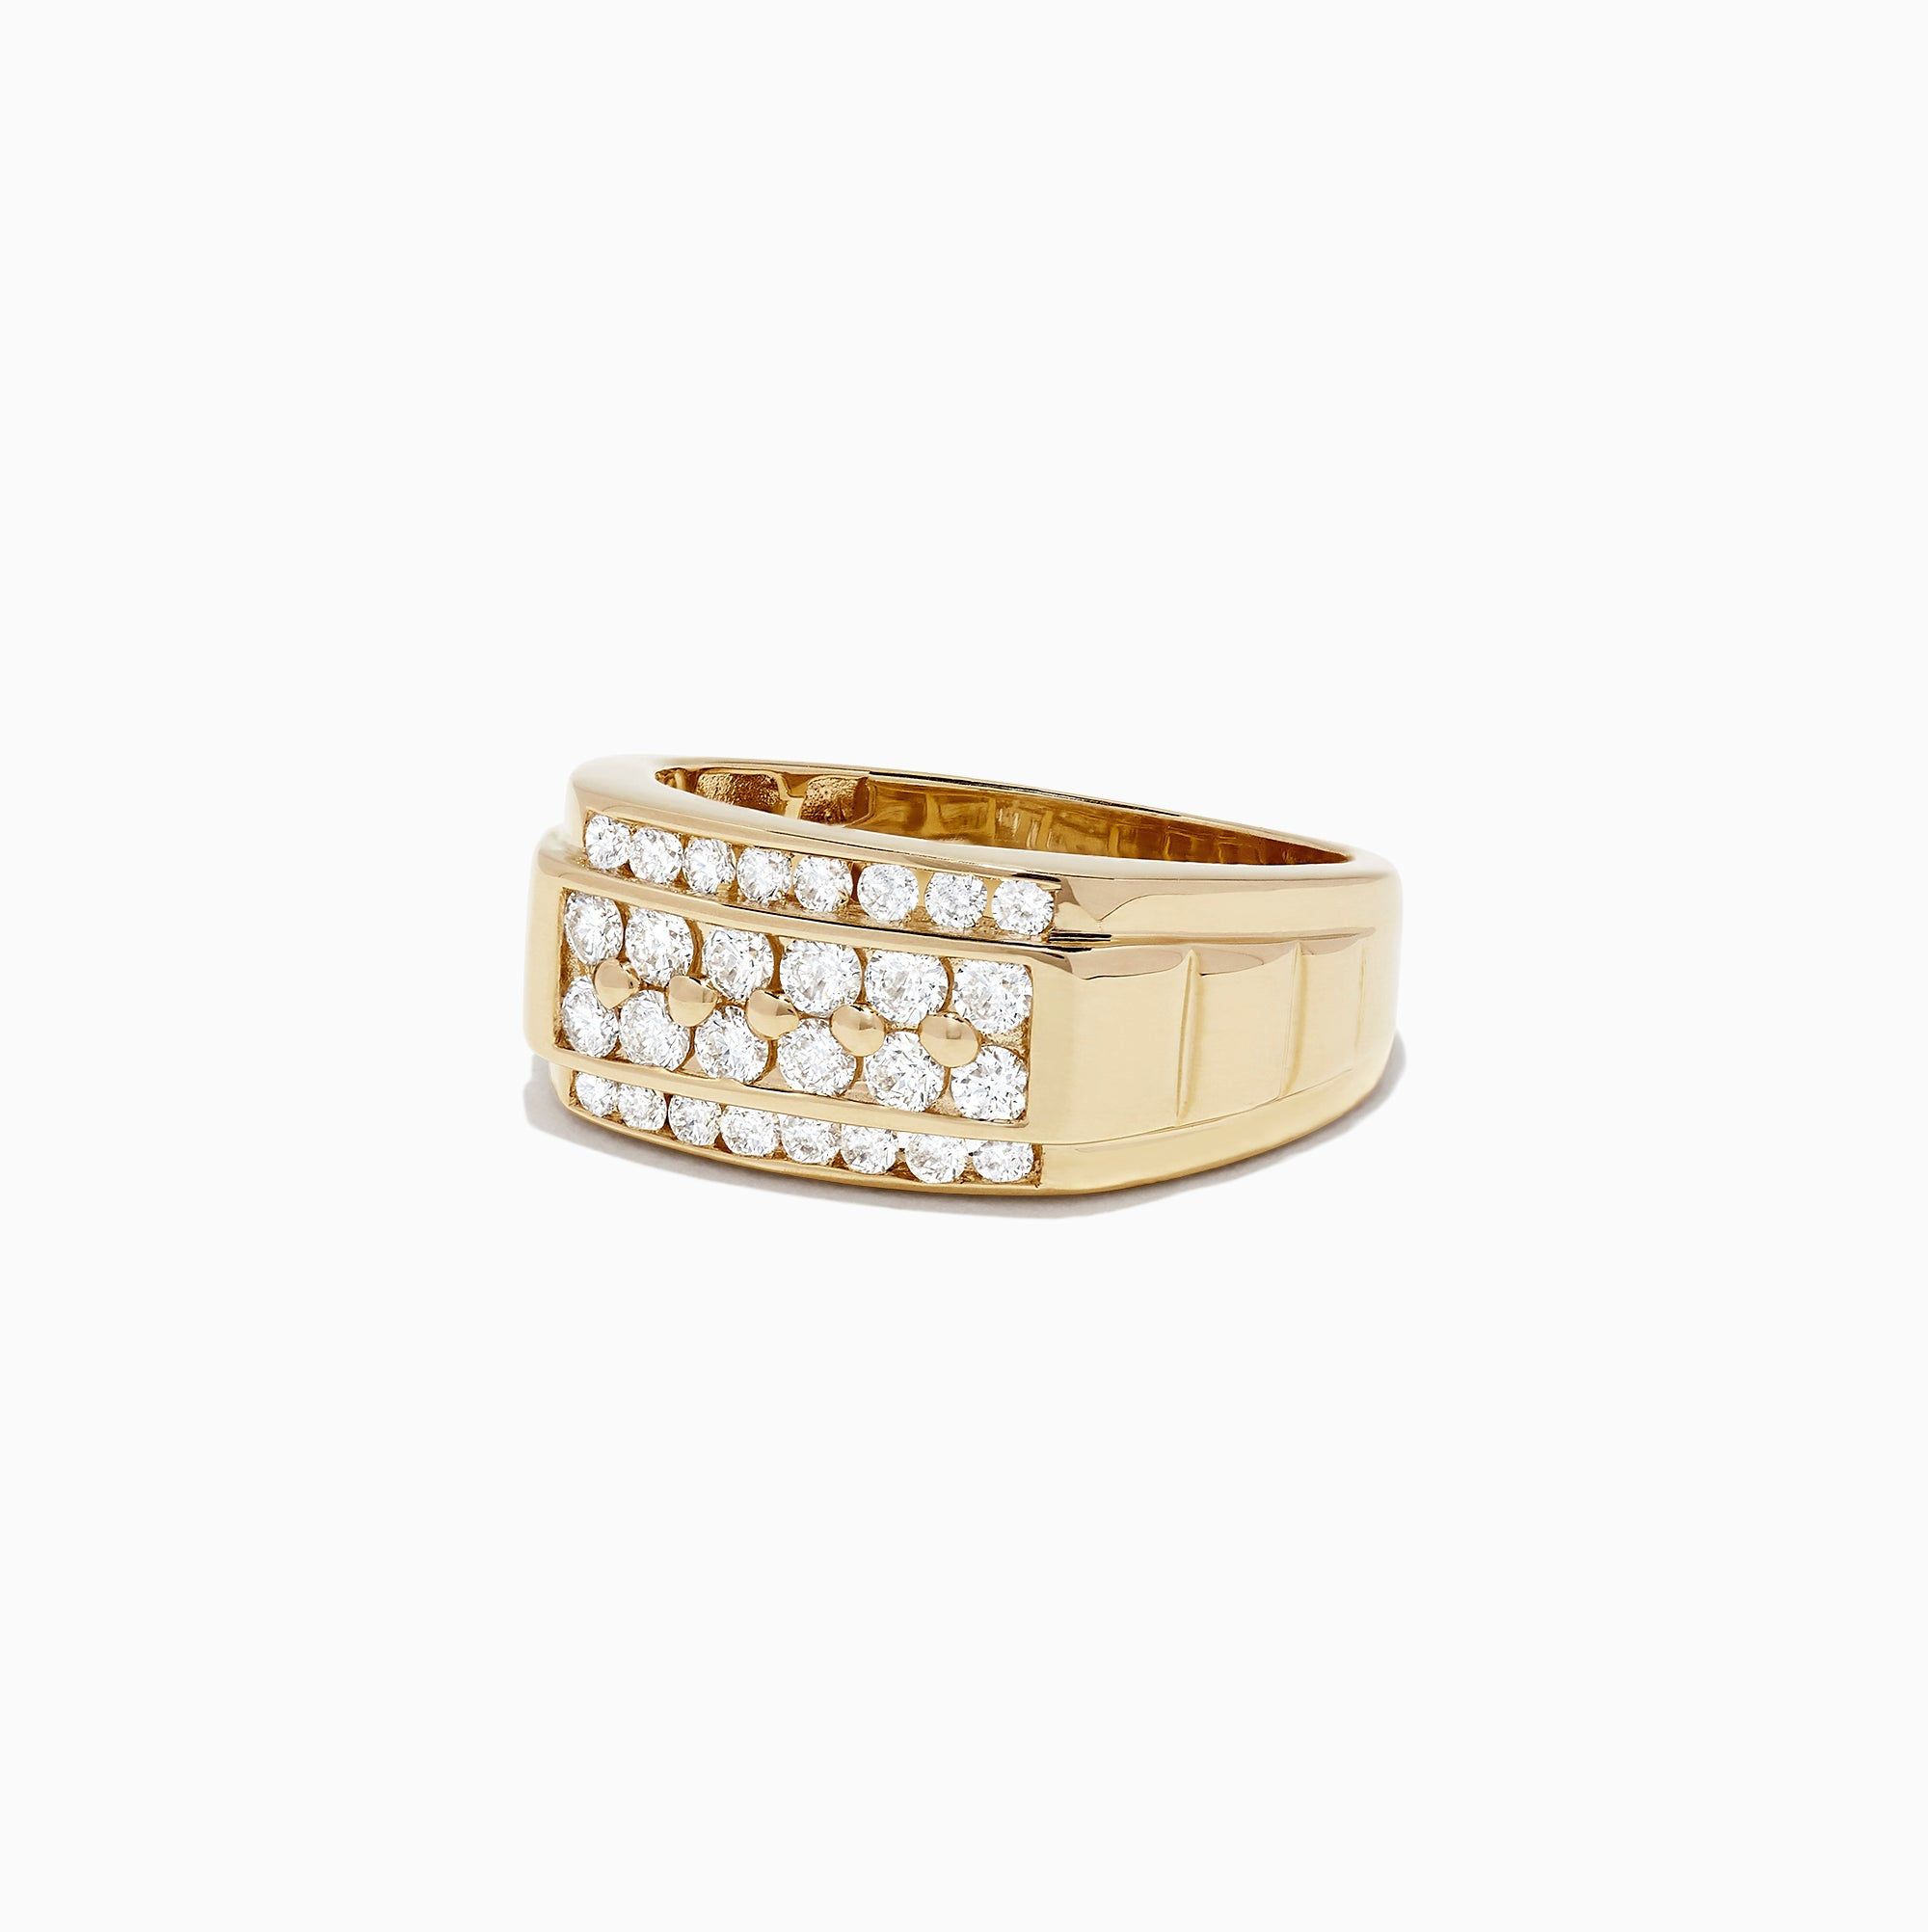 Effy Men's 14K Yellow Gold Diamond Ring, 0.96 TCW